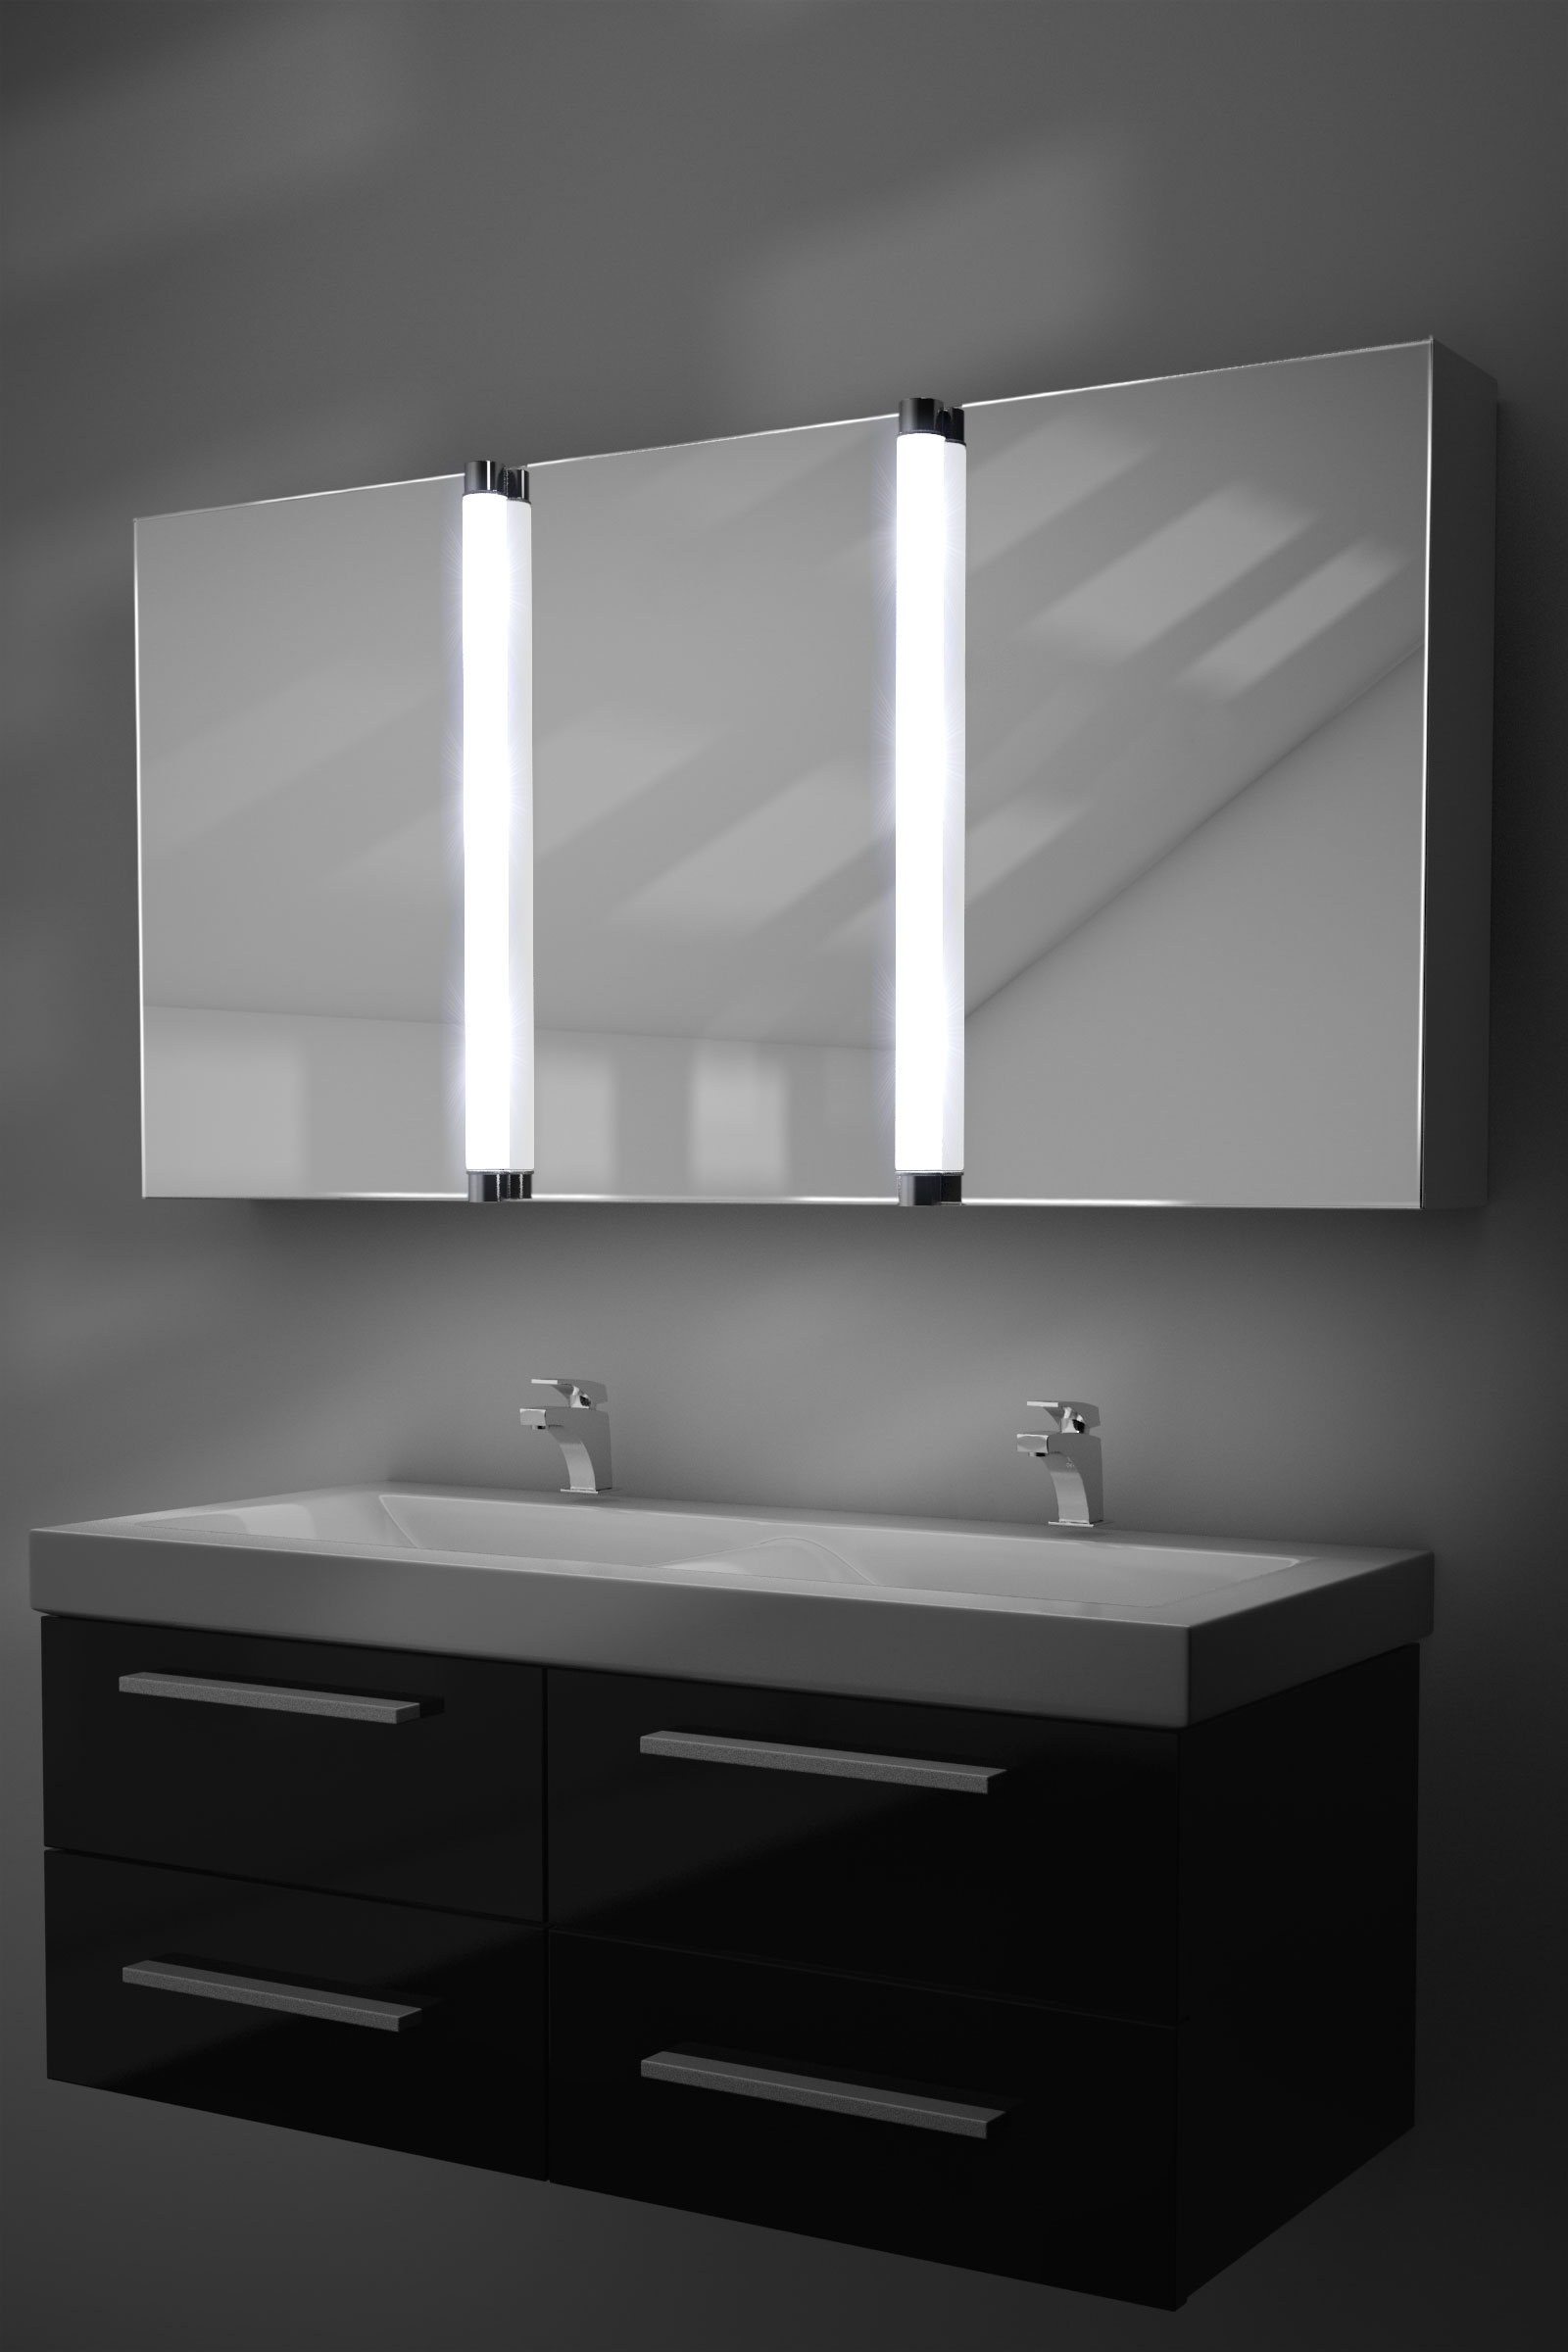 12w Led Bathroom Mirror Front Lamp Makeup Lighting Cabinet Light